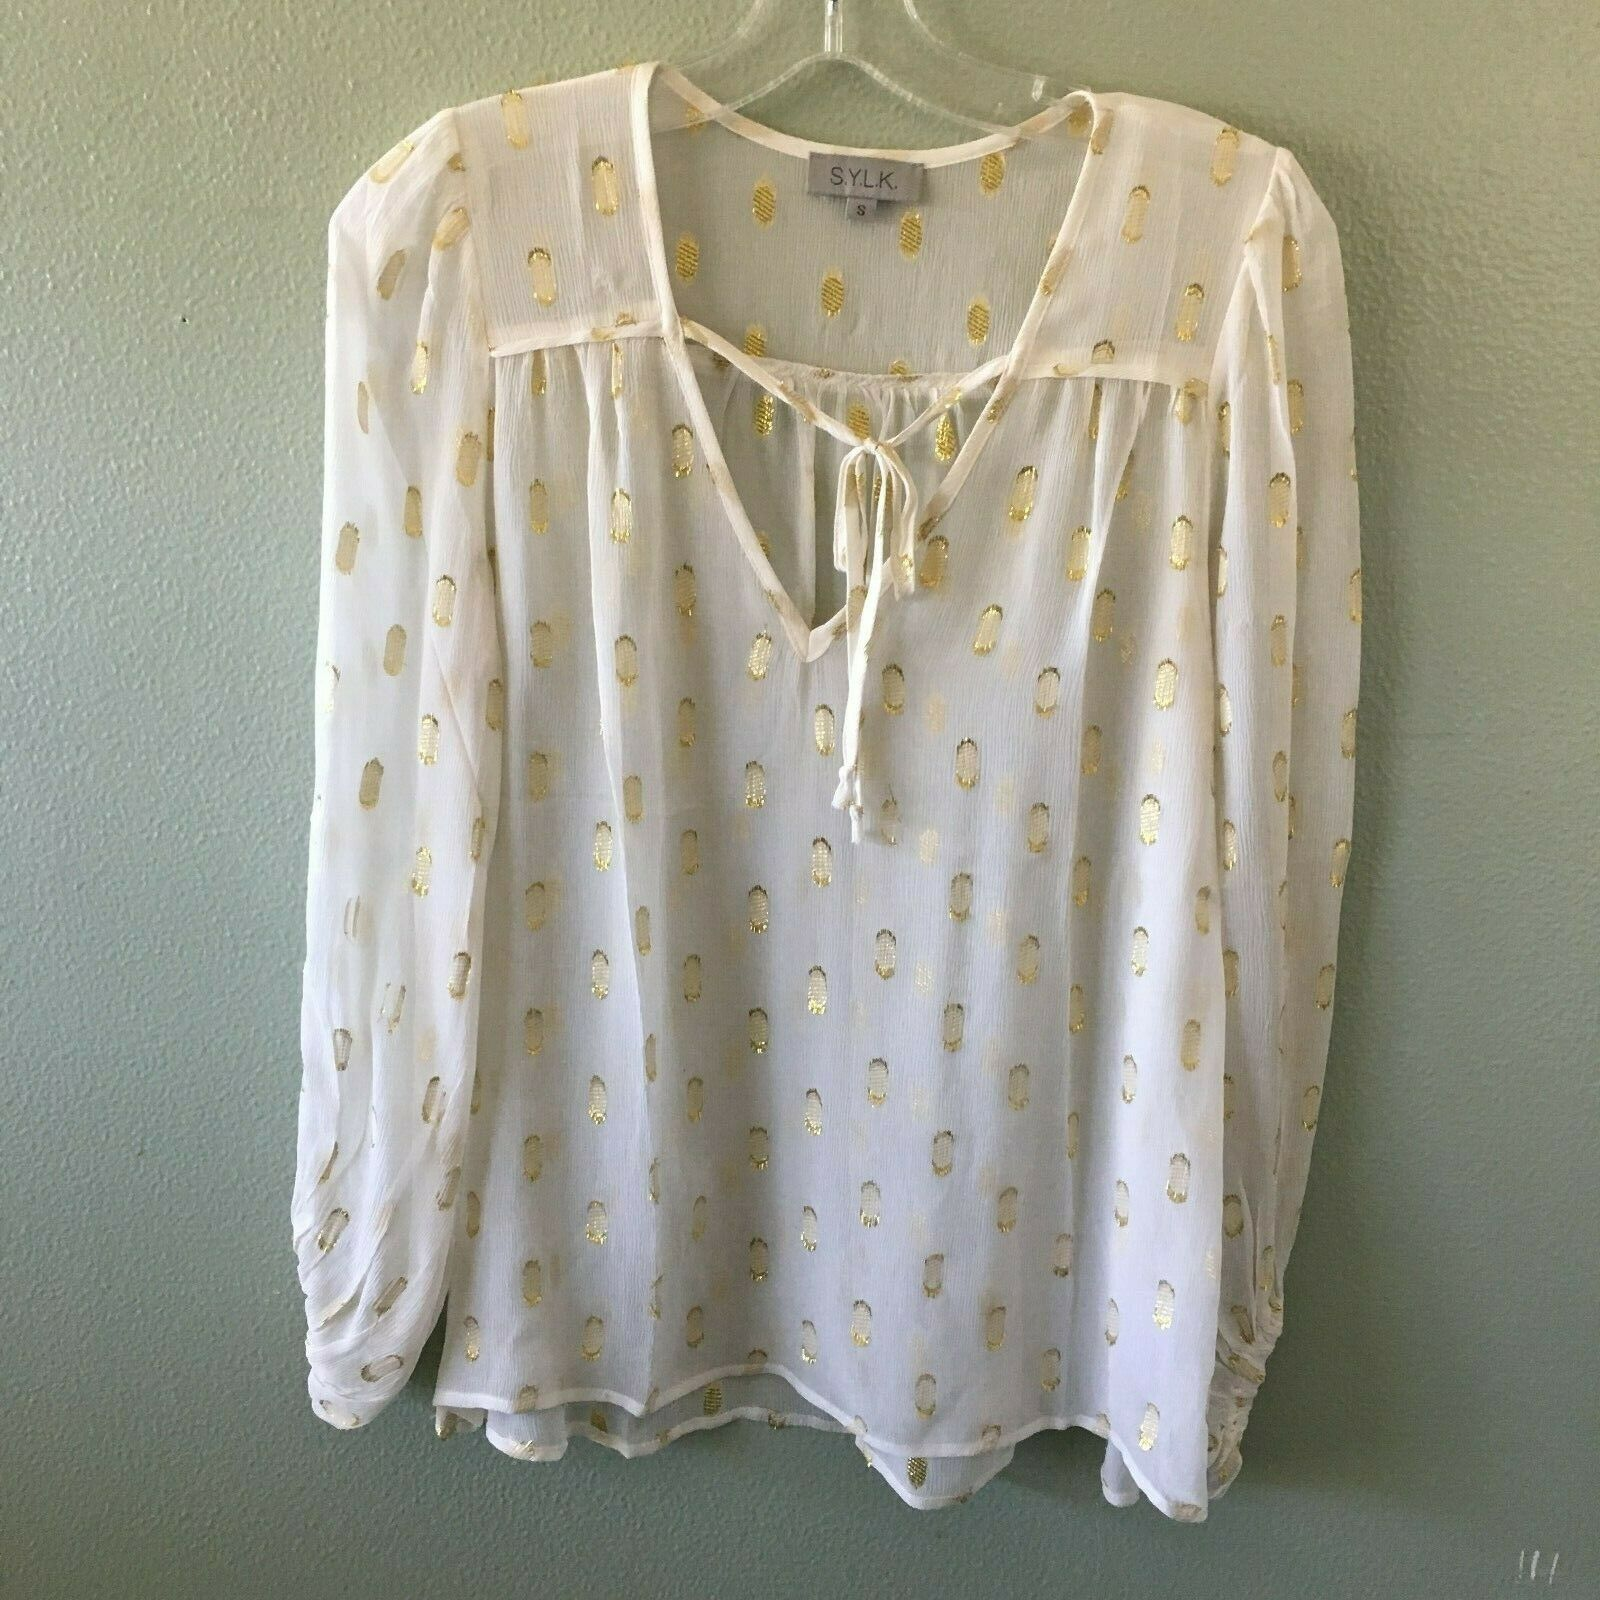 S.y.l.k. top S ivory Gold sheer silk ali blouse - Größe small